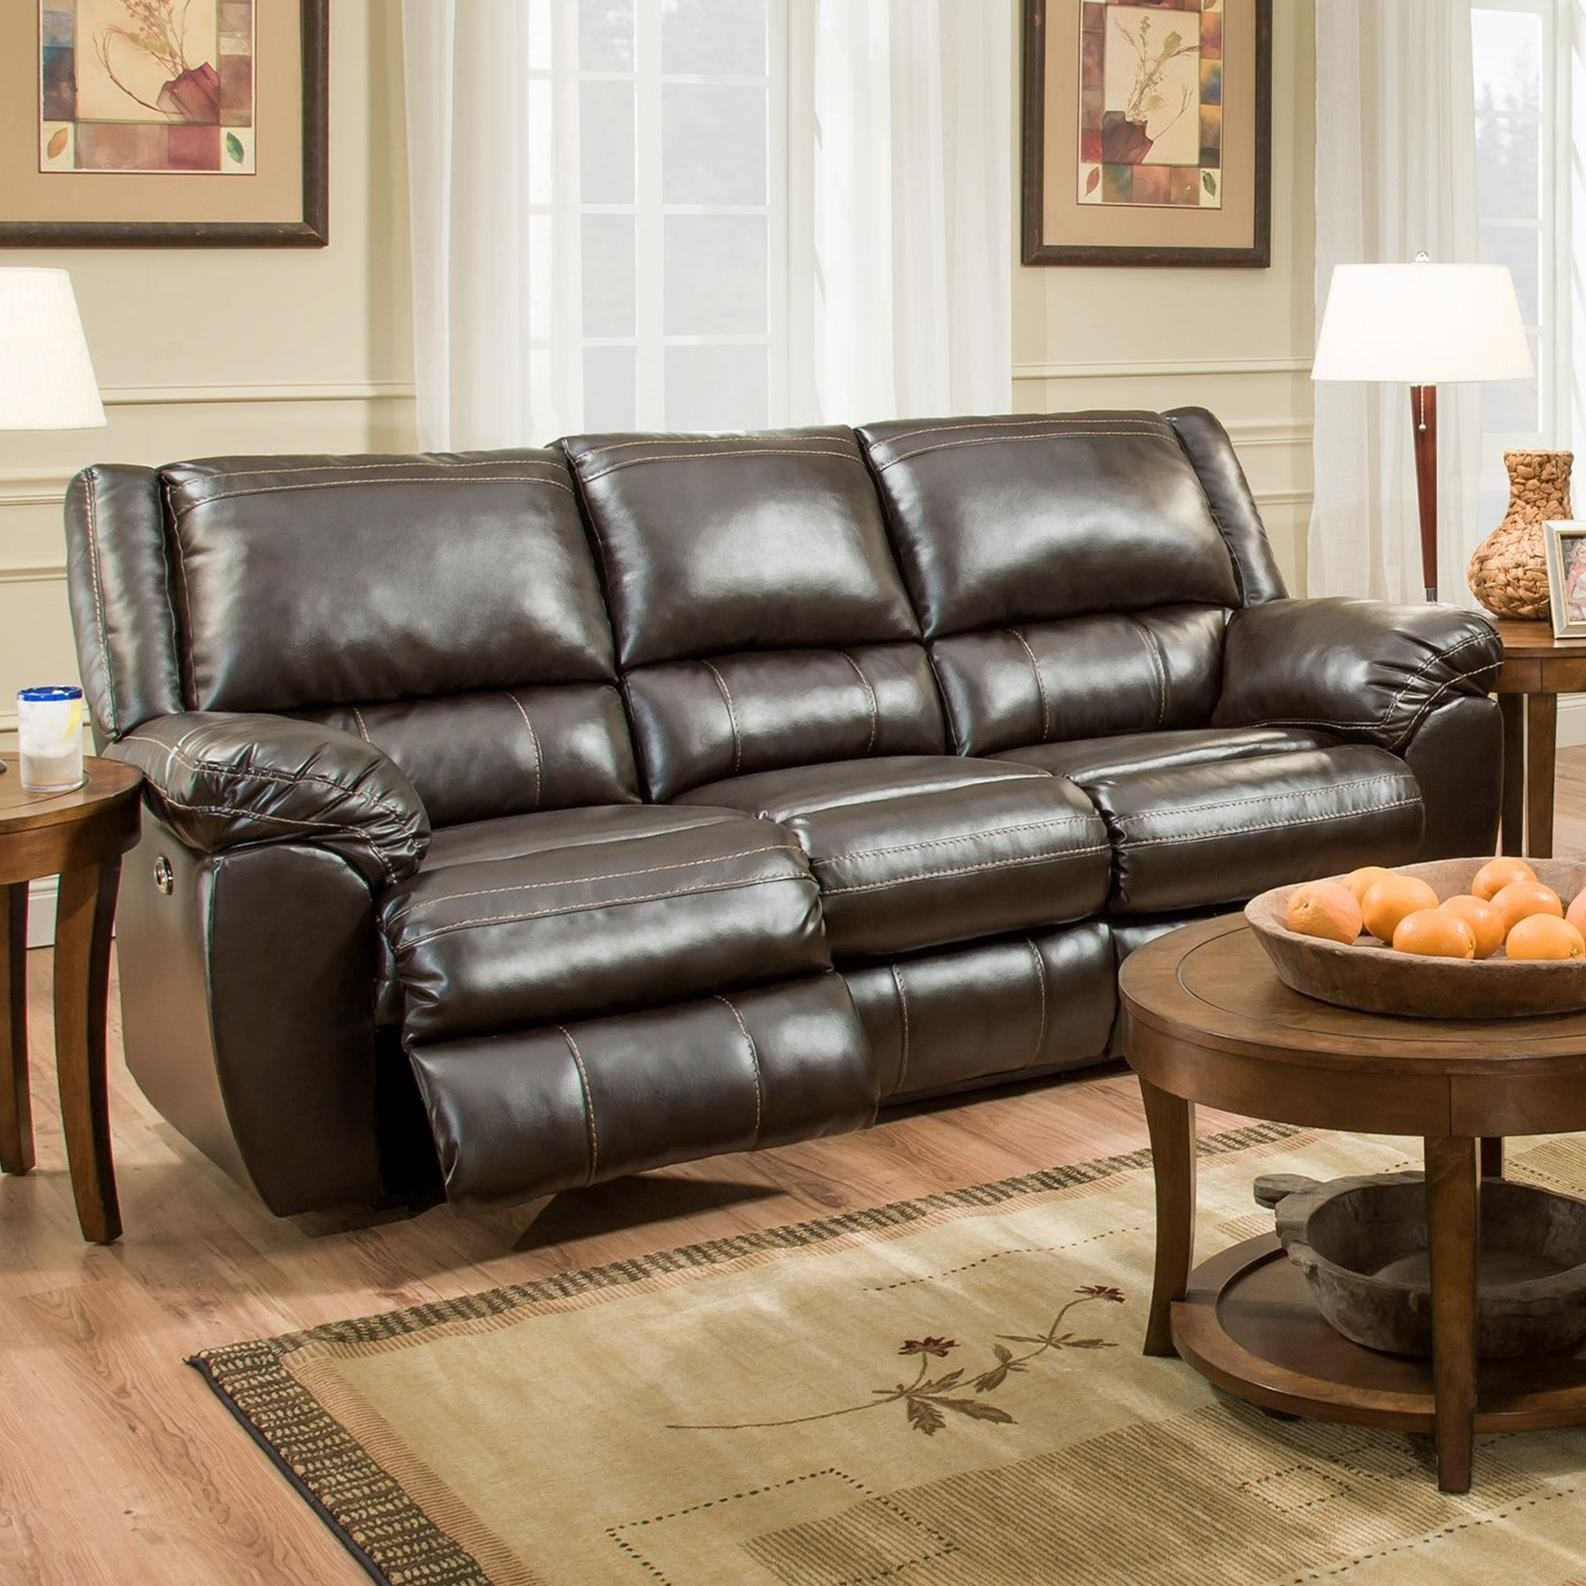 simmons upholstery 50433br power double motion sofa royal furniture reclining sofas. Black Bedroom Furniture Sets. Home Design Ideas